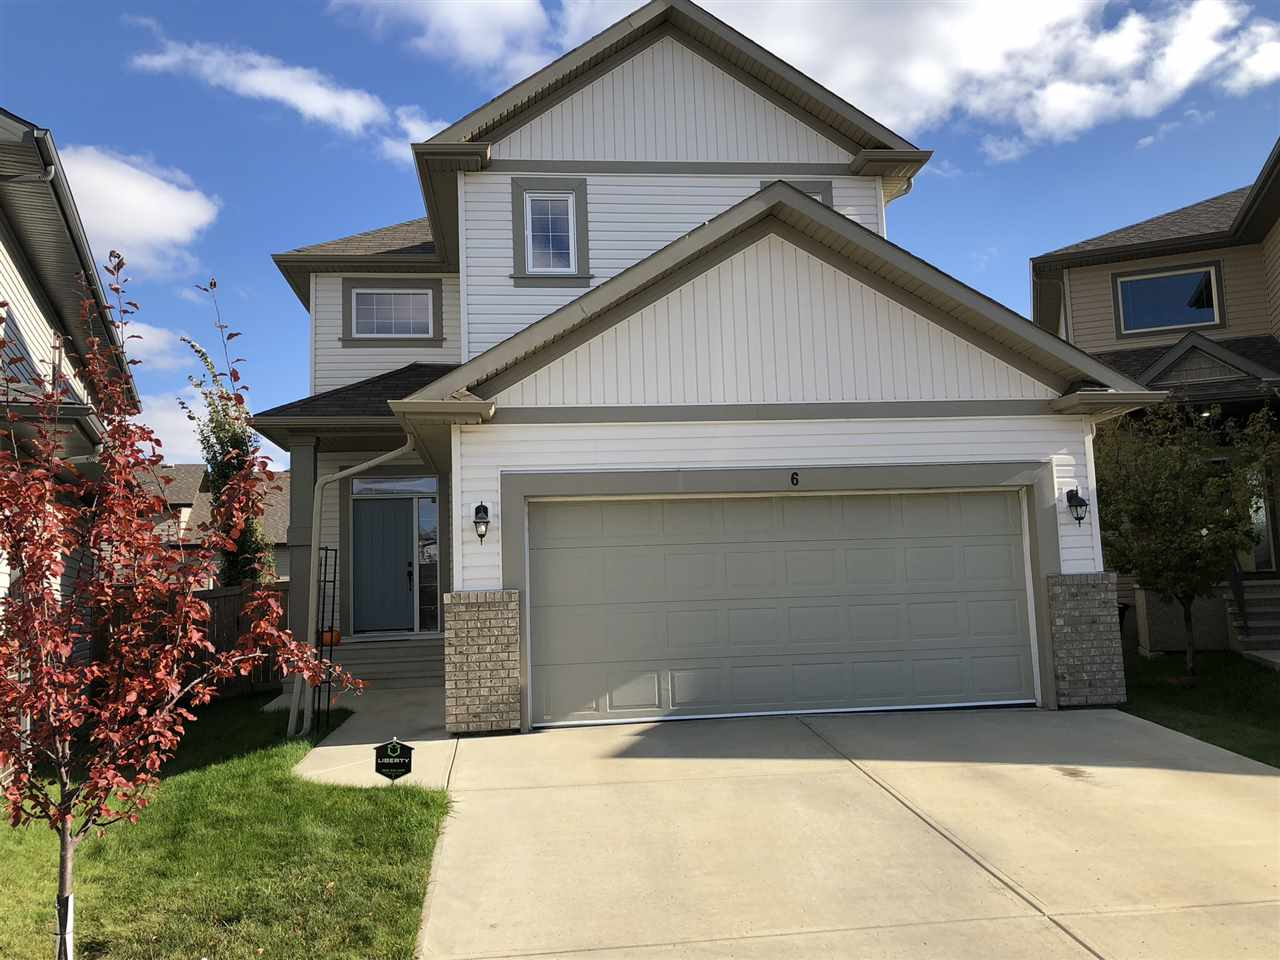 OUTSTANDING LOCATION! Backs directly on to POND/GREENSPACE, LARGE PIE LOT in CUL DE SAC. Clean/Bright 3 bedroom, 4 Bath, 2 Storey with FULLY FINISHED BASEMENT. ***EXTREMELY GOOD FLOOR PLAN***- with all rooms generous in size! Large master suite with a lovely 5 pce Ensuite and GIANT WALK-IN CLOSET. OPEN KITCHEN, EATING, GREAT ROOM. 9' MAIN FLOOR WALLS. Spacious mud room and good sized garage with ample shelving. Other features include: CENTRAL AIR, HARDWOOD/TILE flooring, GRANITE counters, HUGE DECK, much more! ALL this located in the desirable area of SOUTHFORT with excellent amenities.